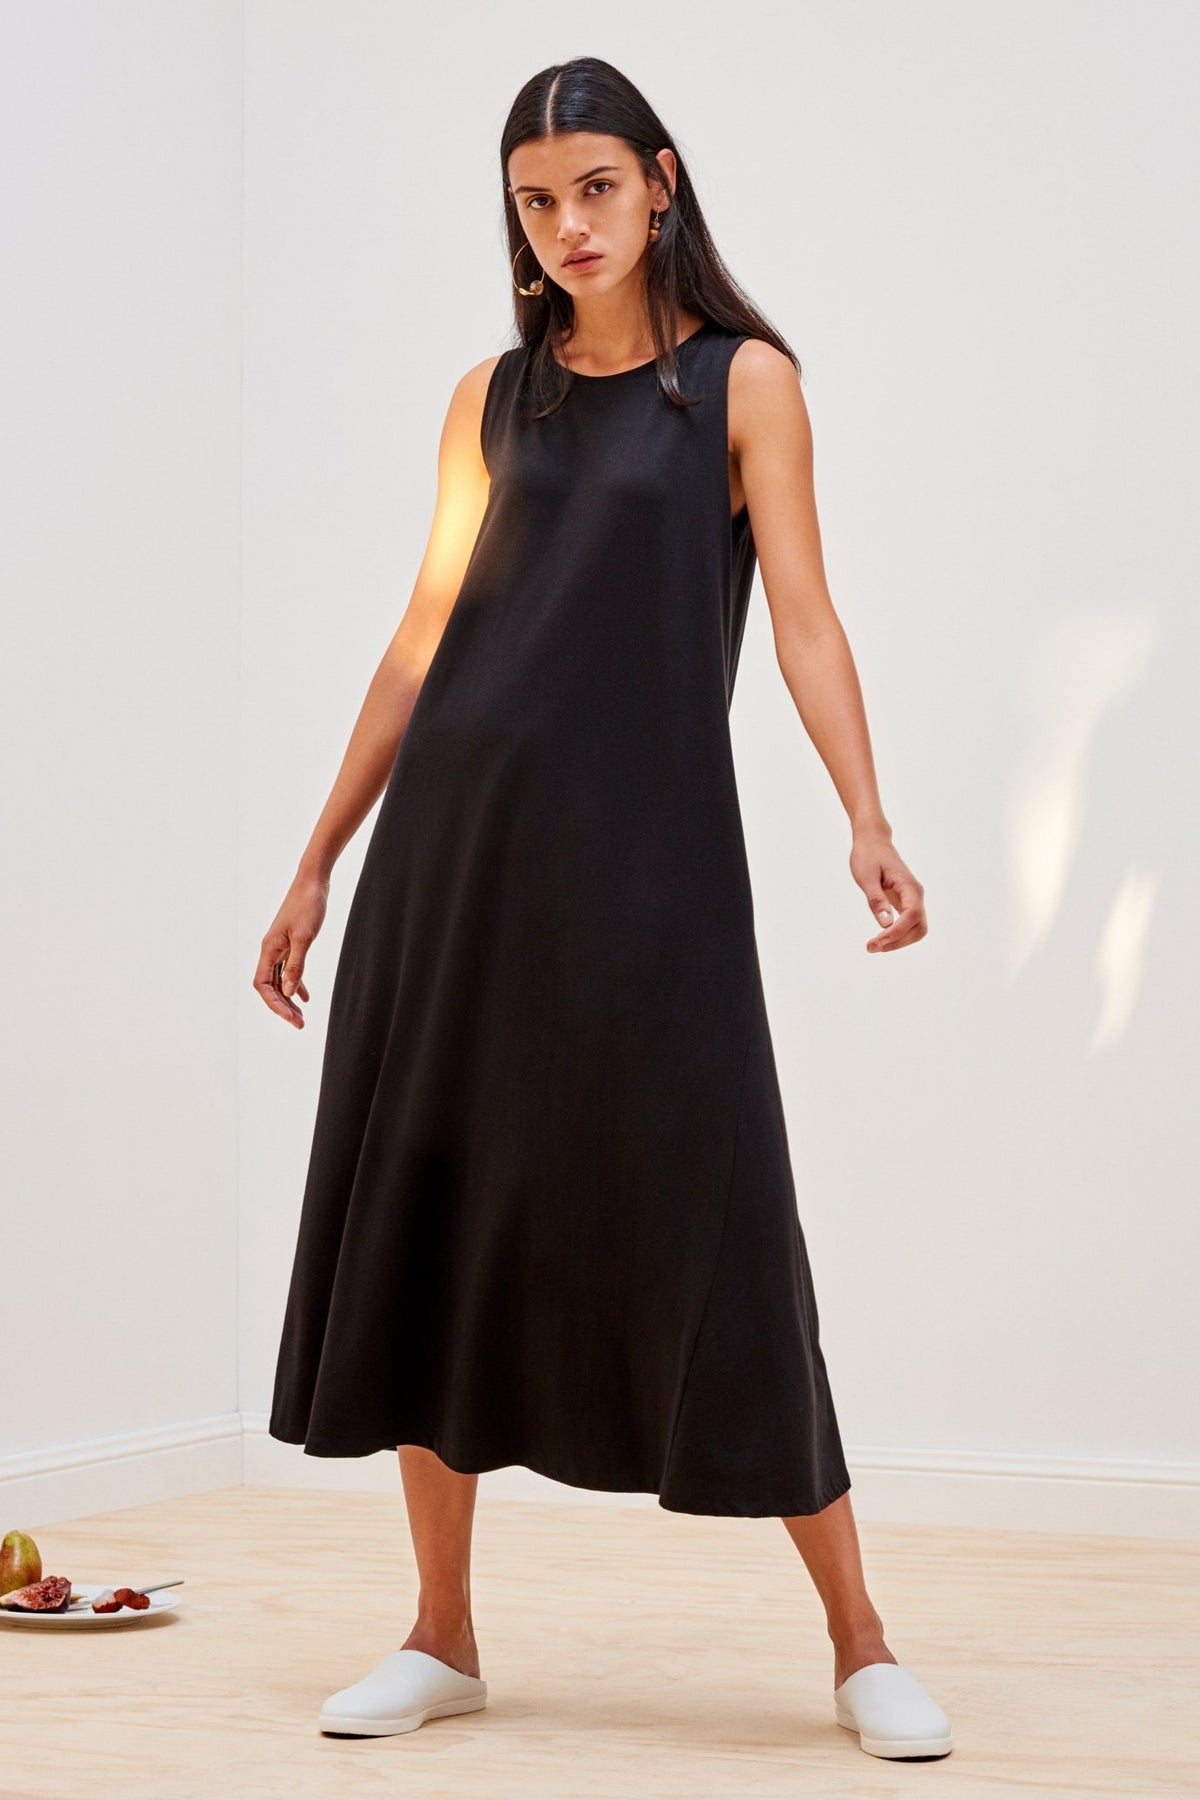 Kowtow stockists Building Block Tank Swing Dress Organic Fairtrade Ethical stockists online auckland parnell